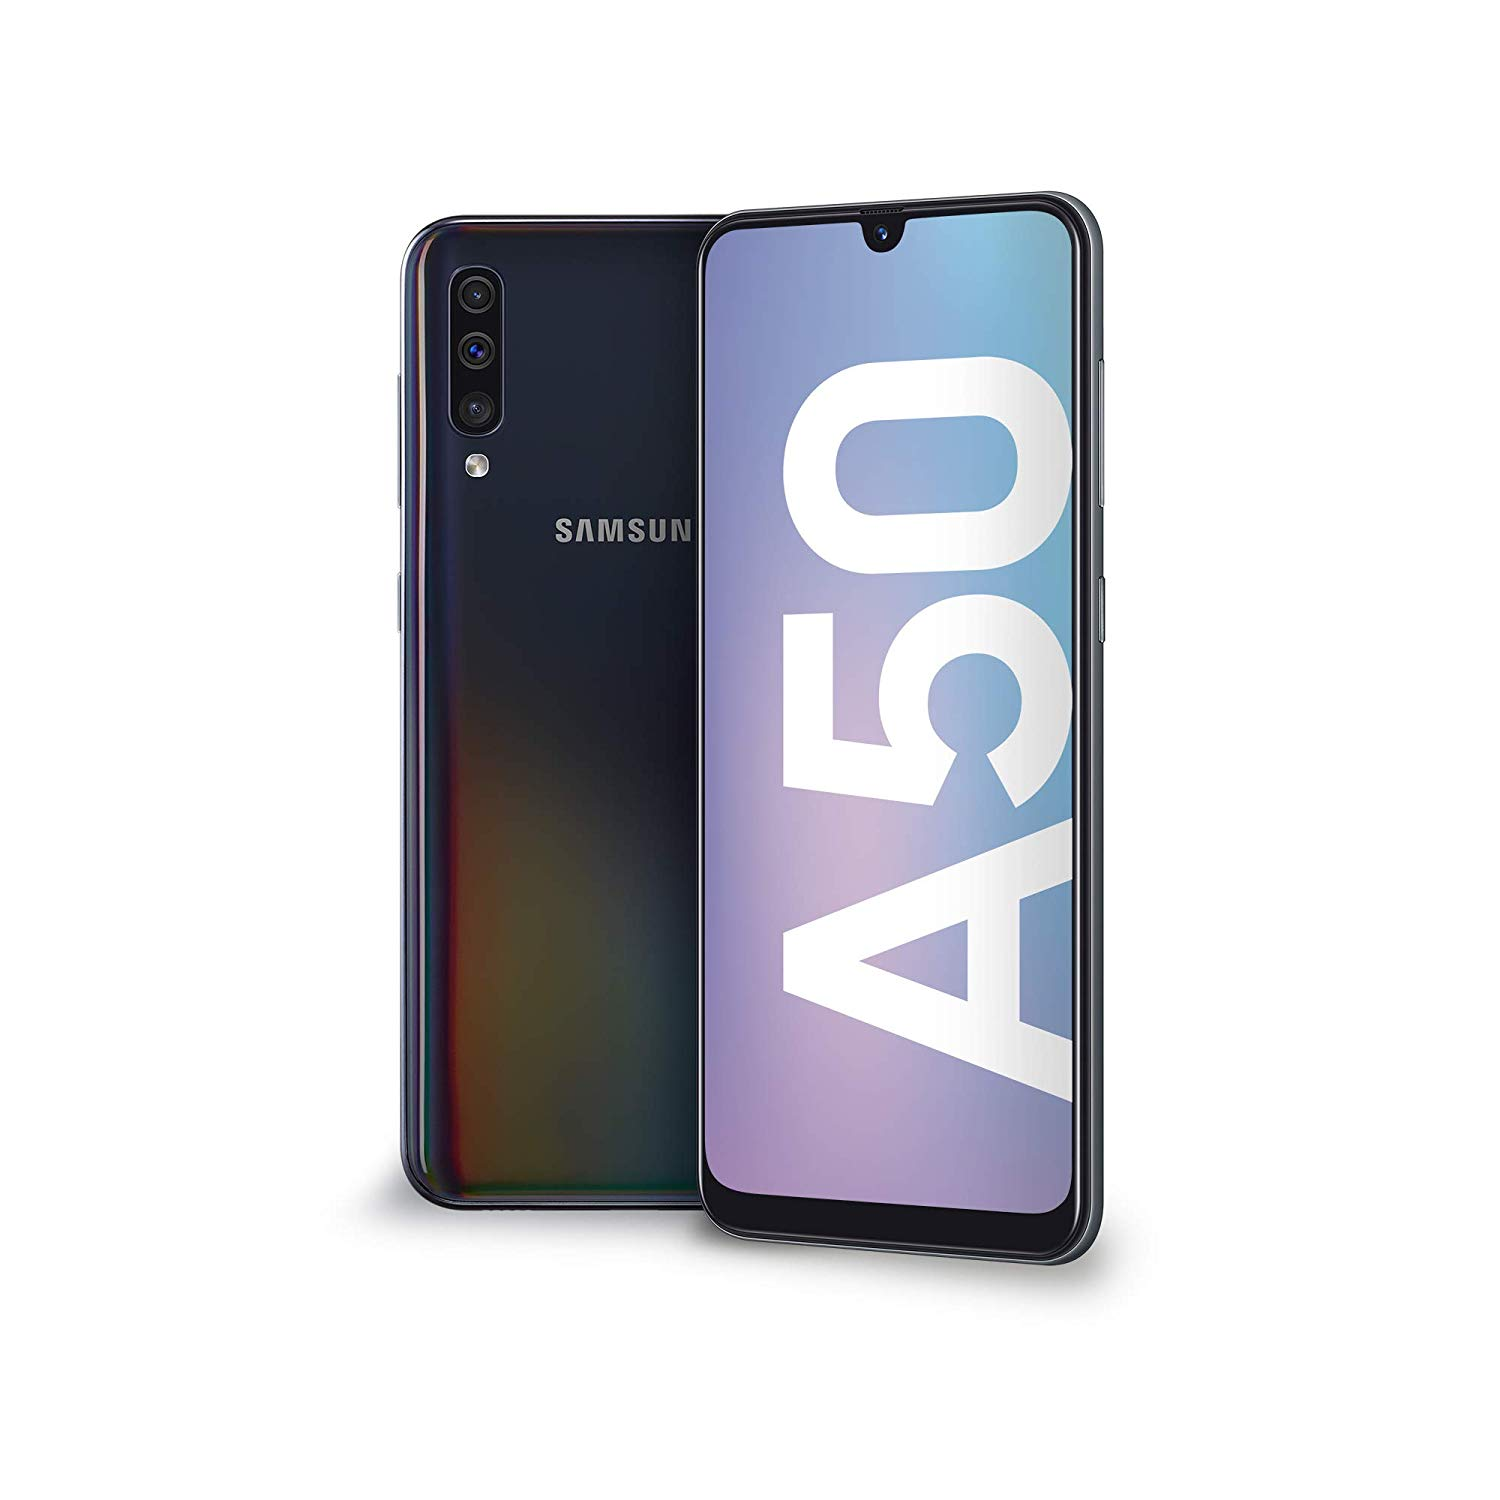 Samsung Galaxy A50 Display 6.4″, 128 GB Espandibili, RAM 4 GB, Batteria 4000 mAh, 4G, Dual SIM Smartphone, Android 9 Pie, (2019) [Versione Italiana]